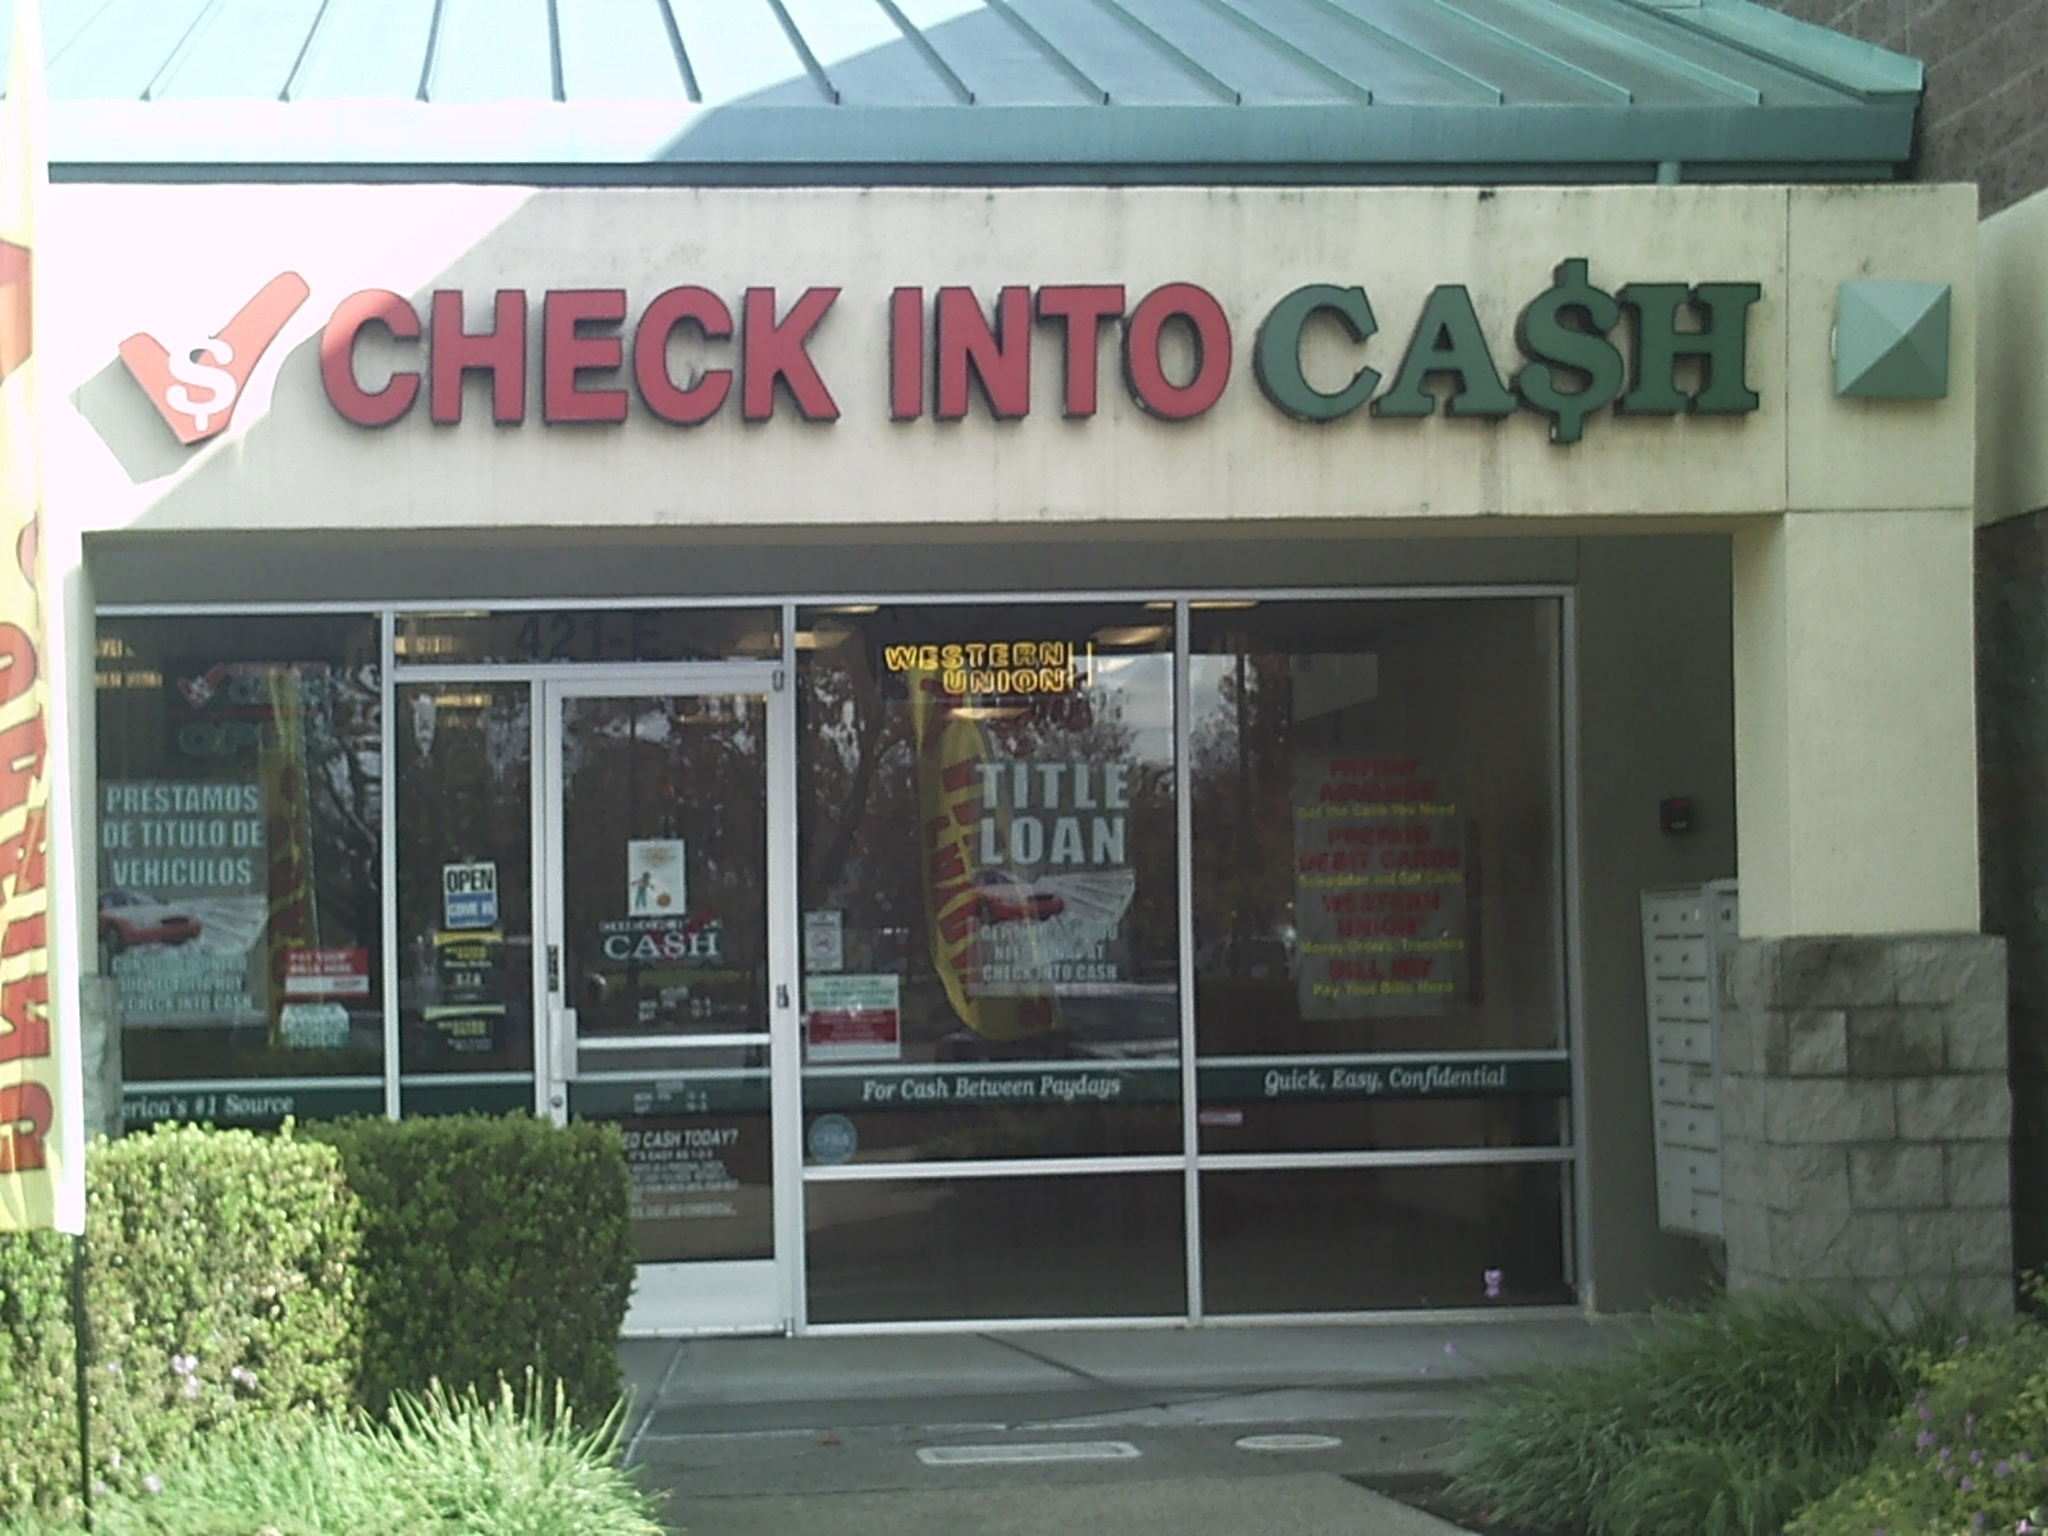 Cash loans in pittsburgh pa photo 10